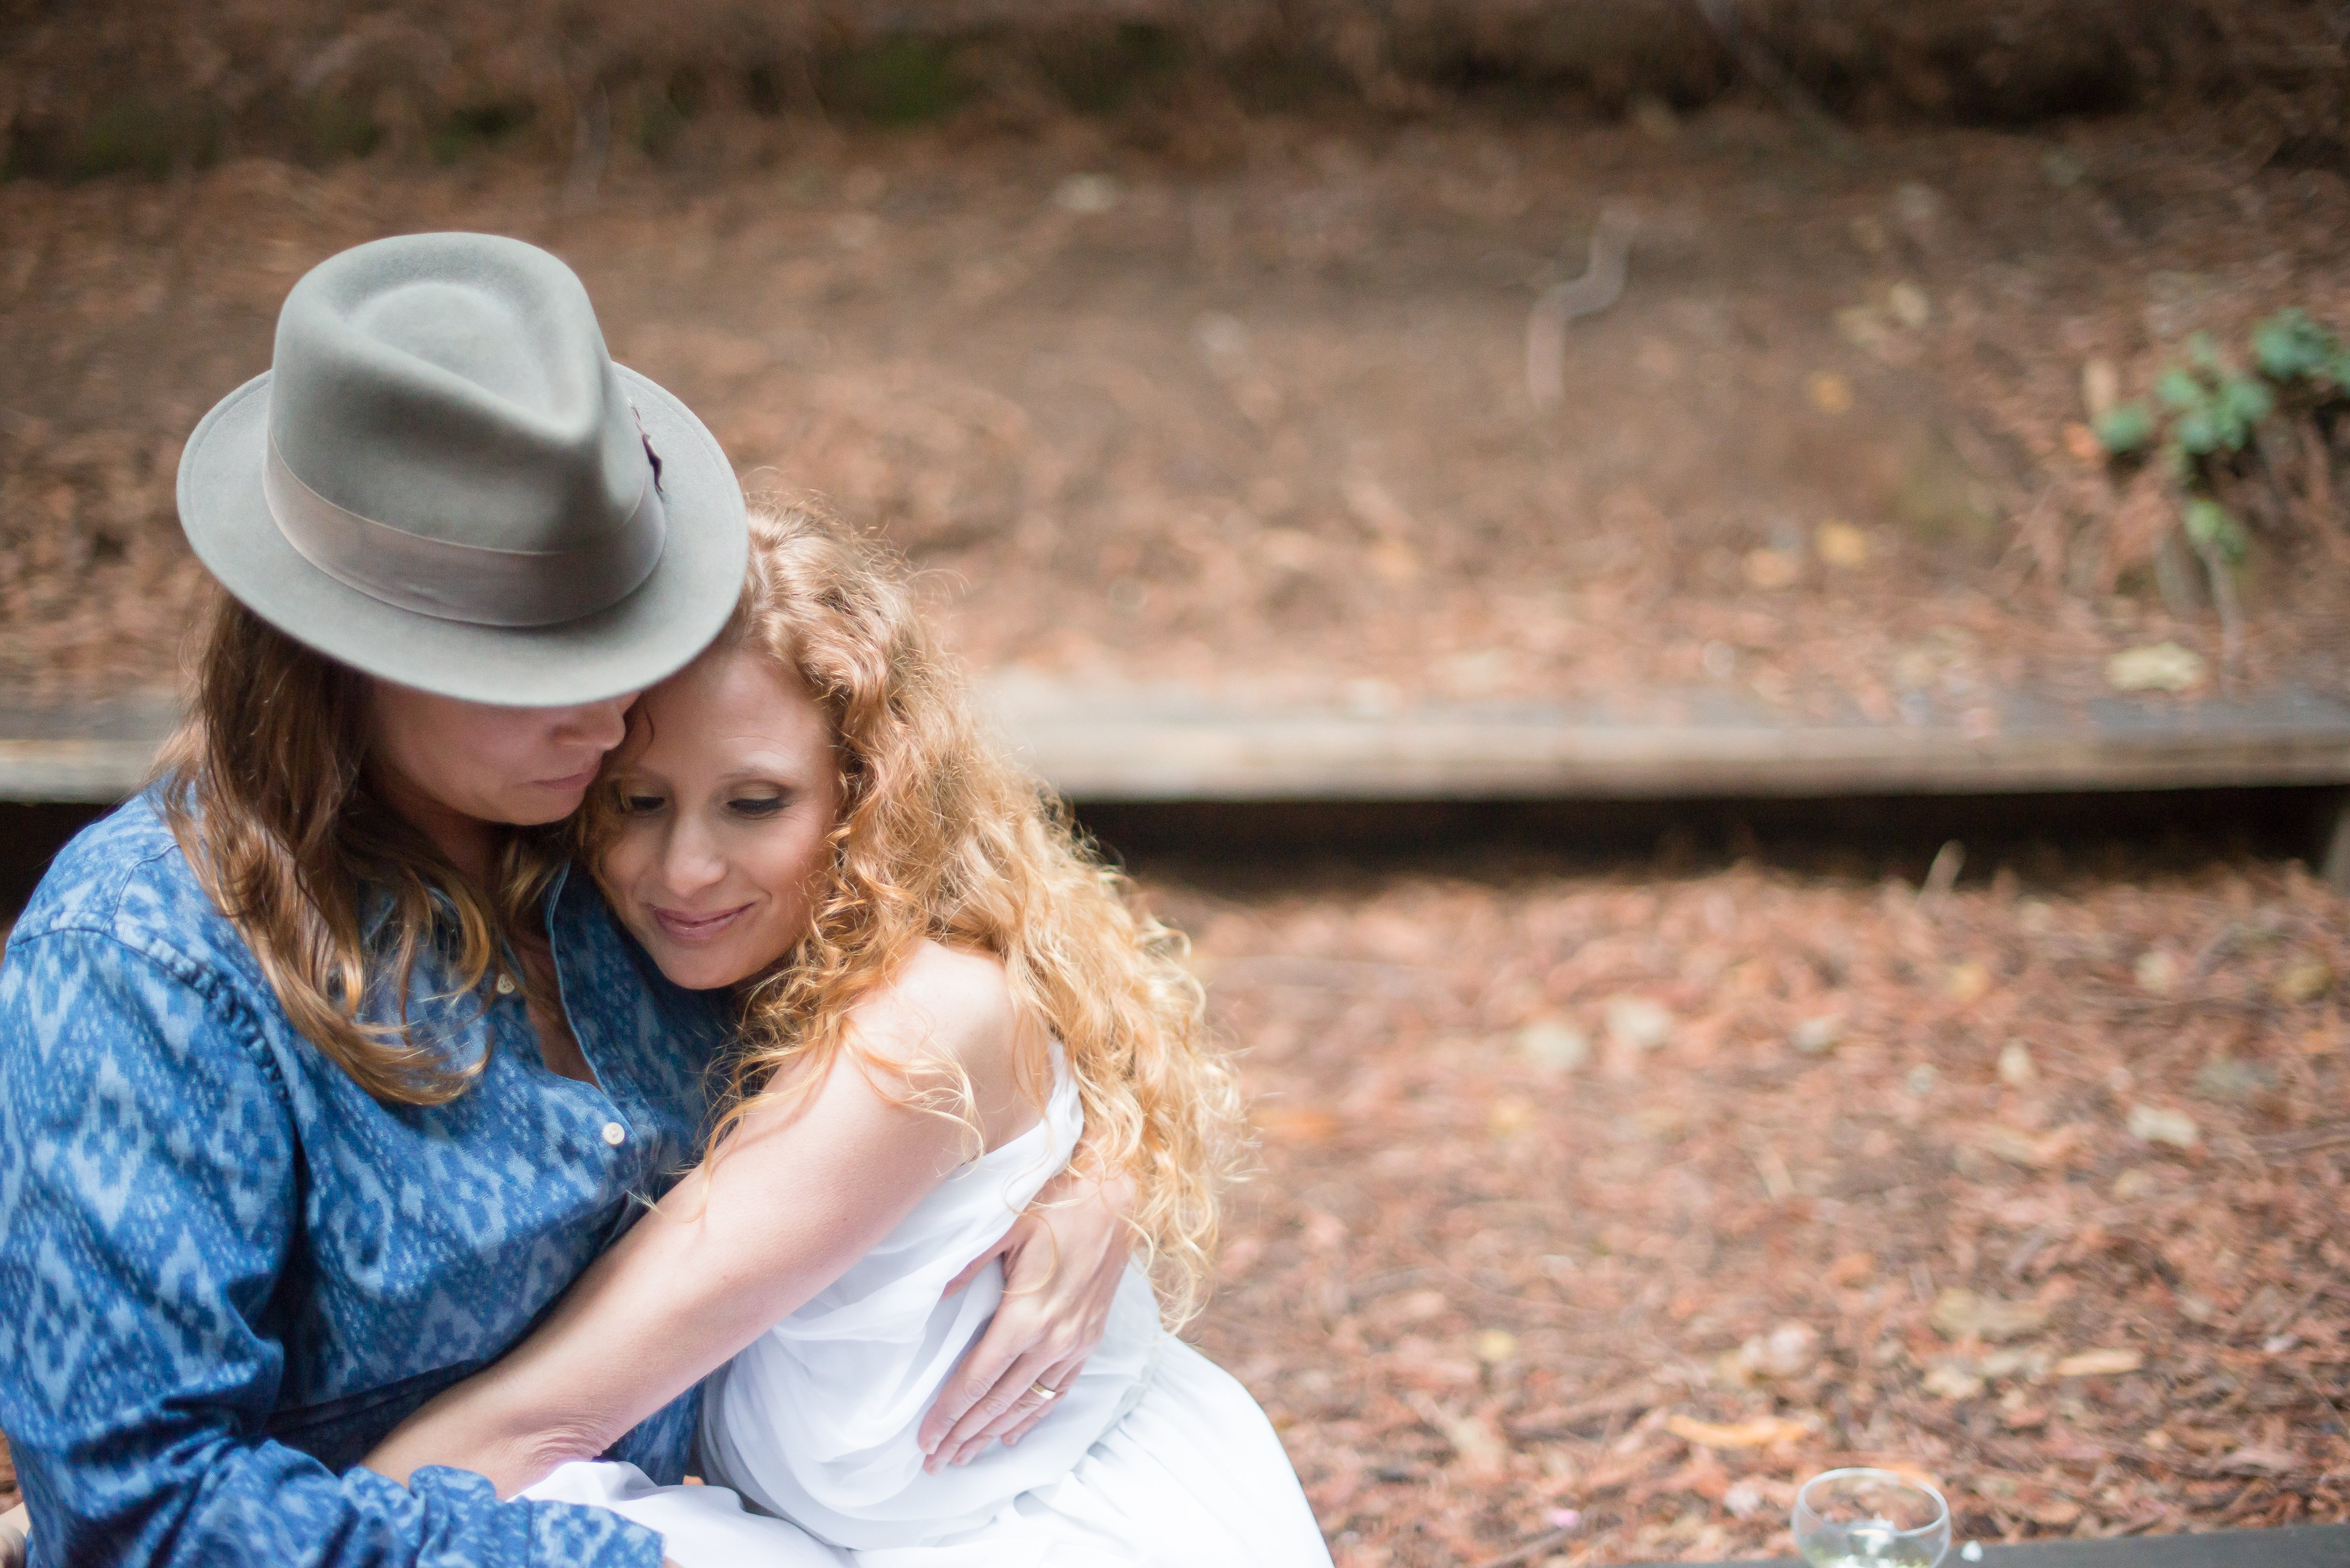 Summer & Meredith's Romantic Pinic in the Woods | Old Mill Park | Mill  Valley